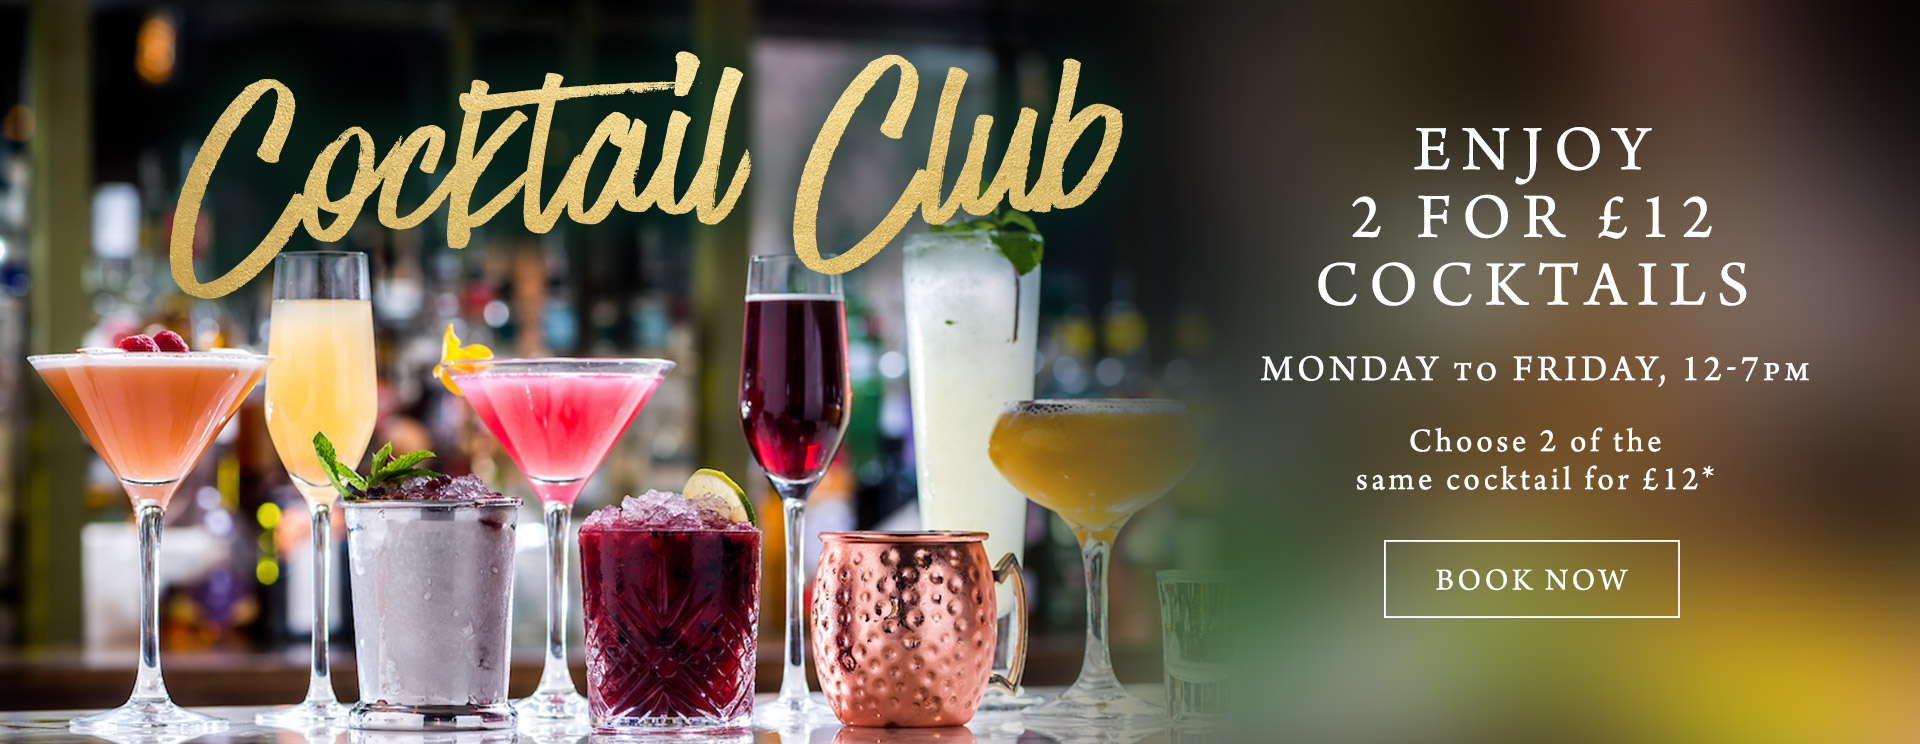 2 for £12 cocktails at The Brampton Mill